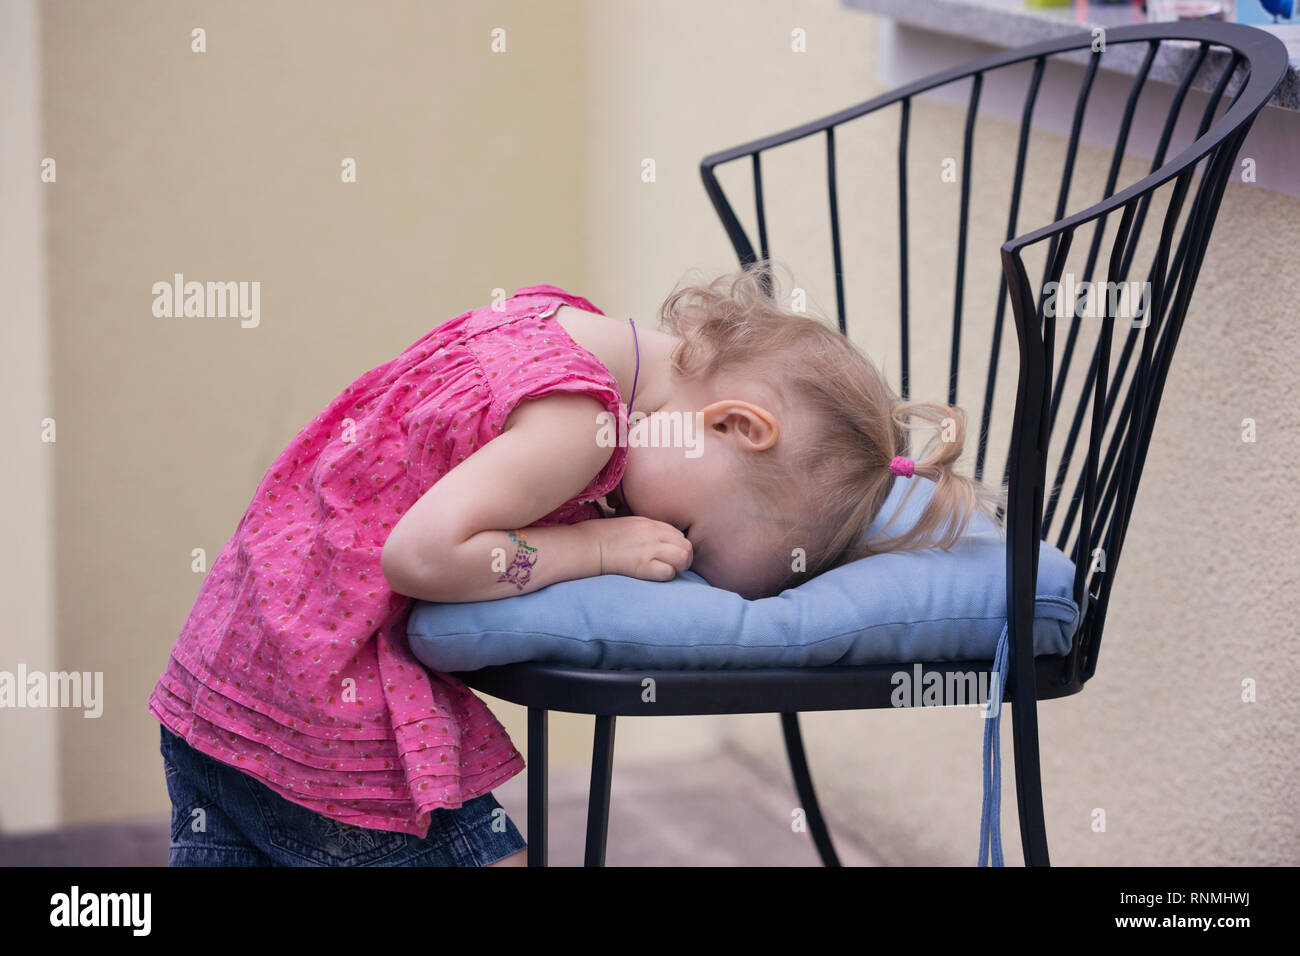 Little girl sulking and hiding her face on a chair cushion - Stock Image